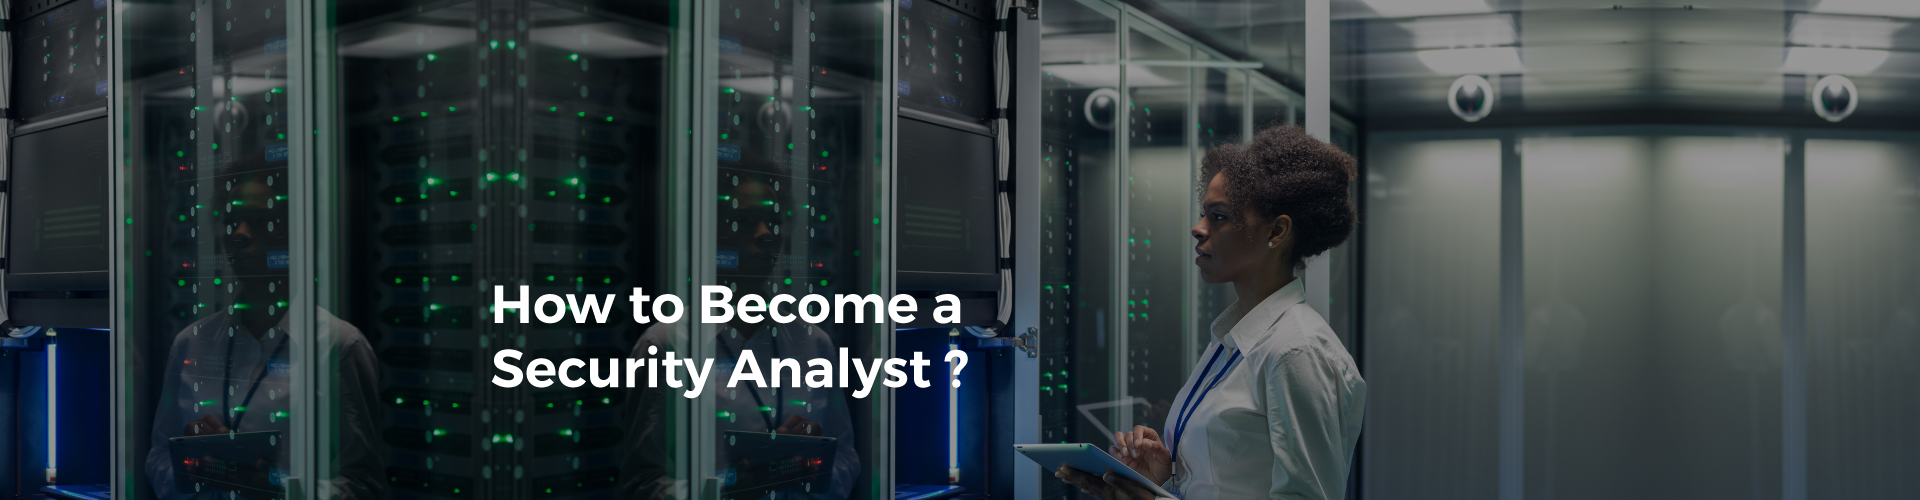 How to Become a Security Analyst?